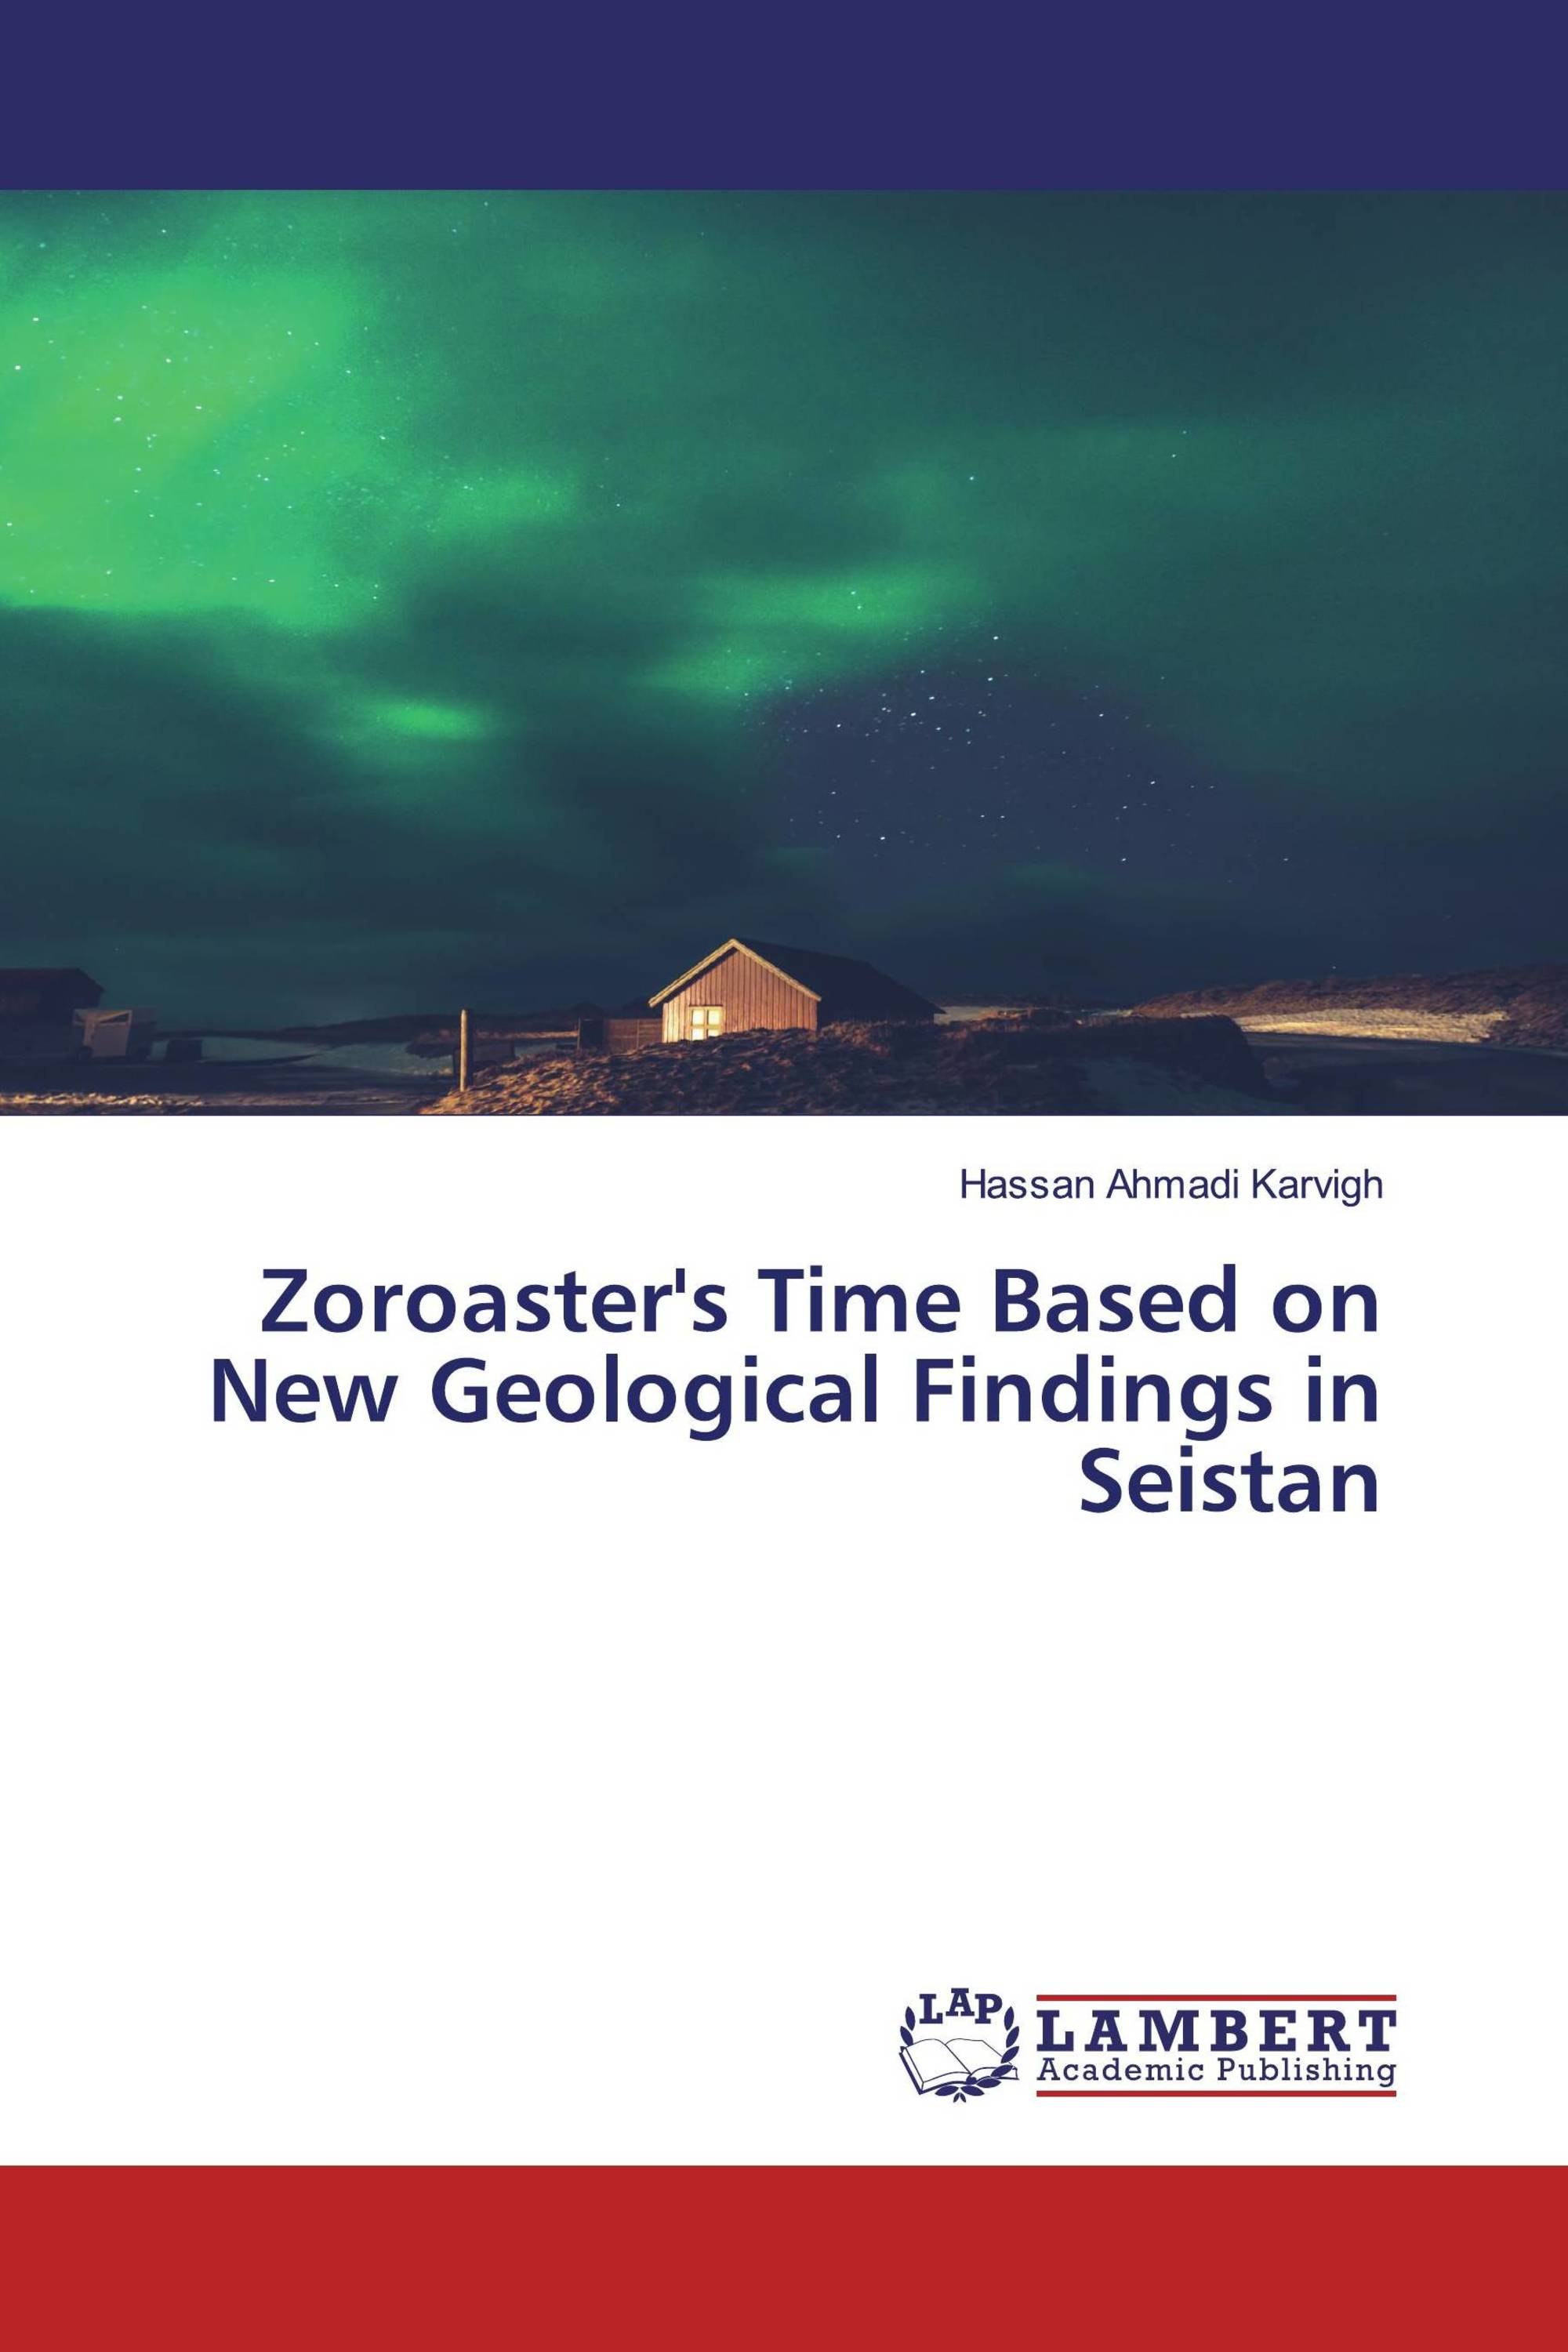 Zoroaster's Time Based on New Geological Findings in Seistan